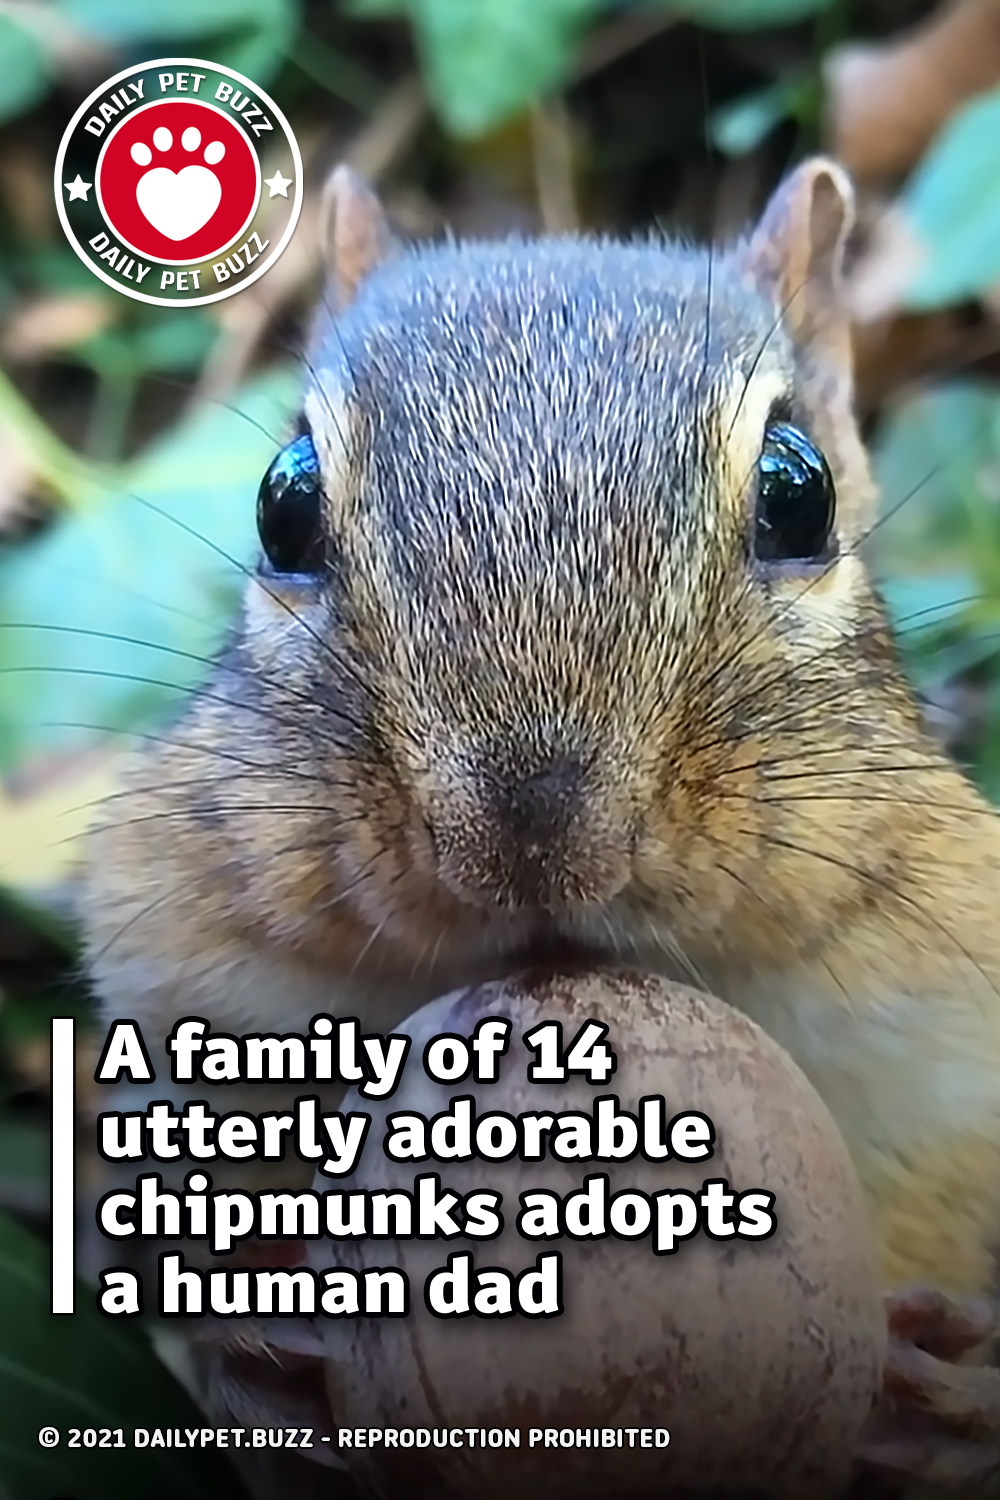 A family of 14 utterly adorable chipmunks adopts a human dad